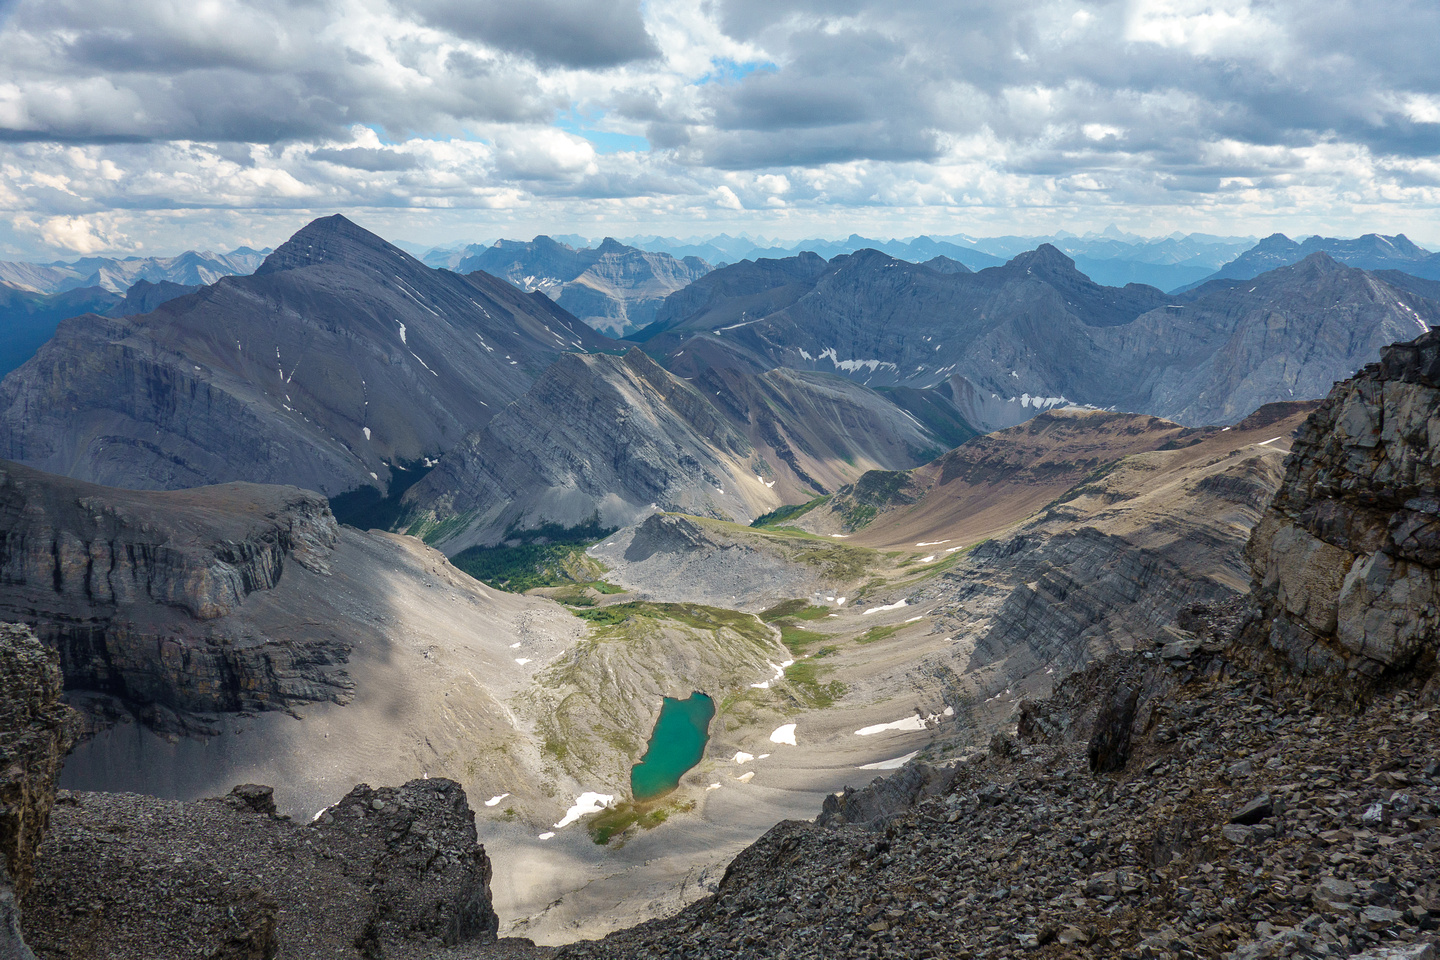 The lower Spectral Lake and Mount Aylmer.